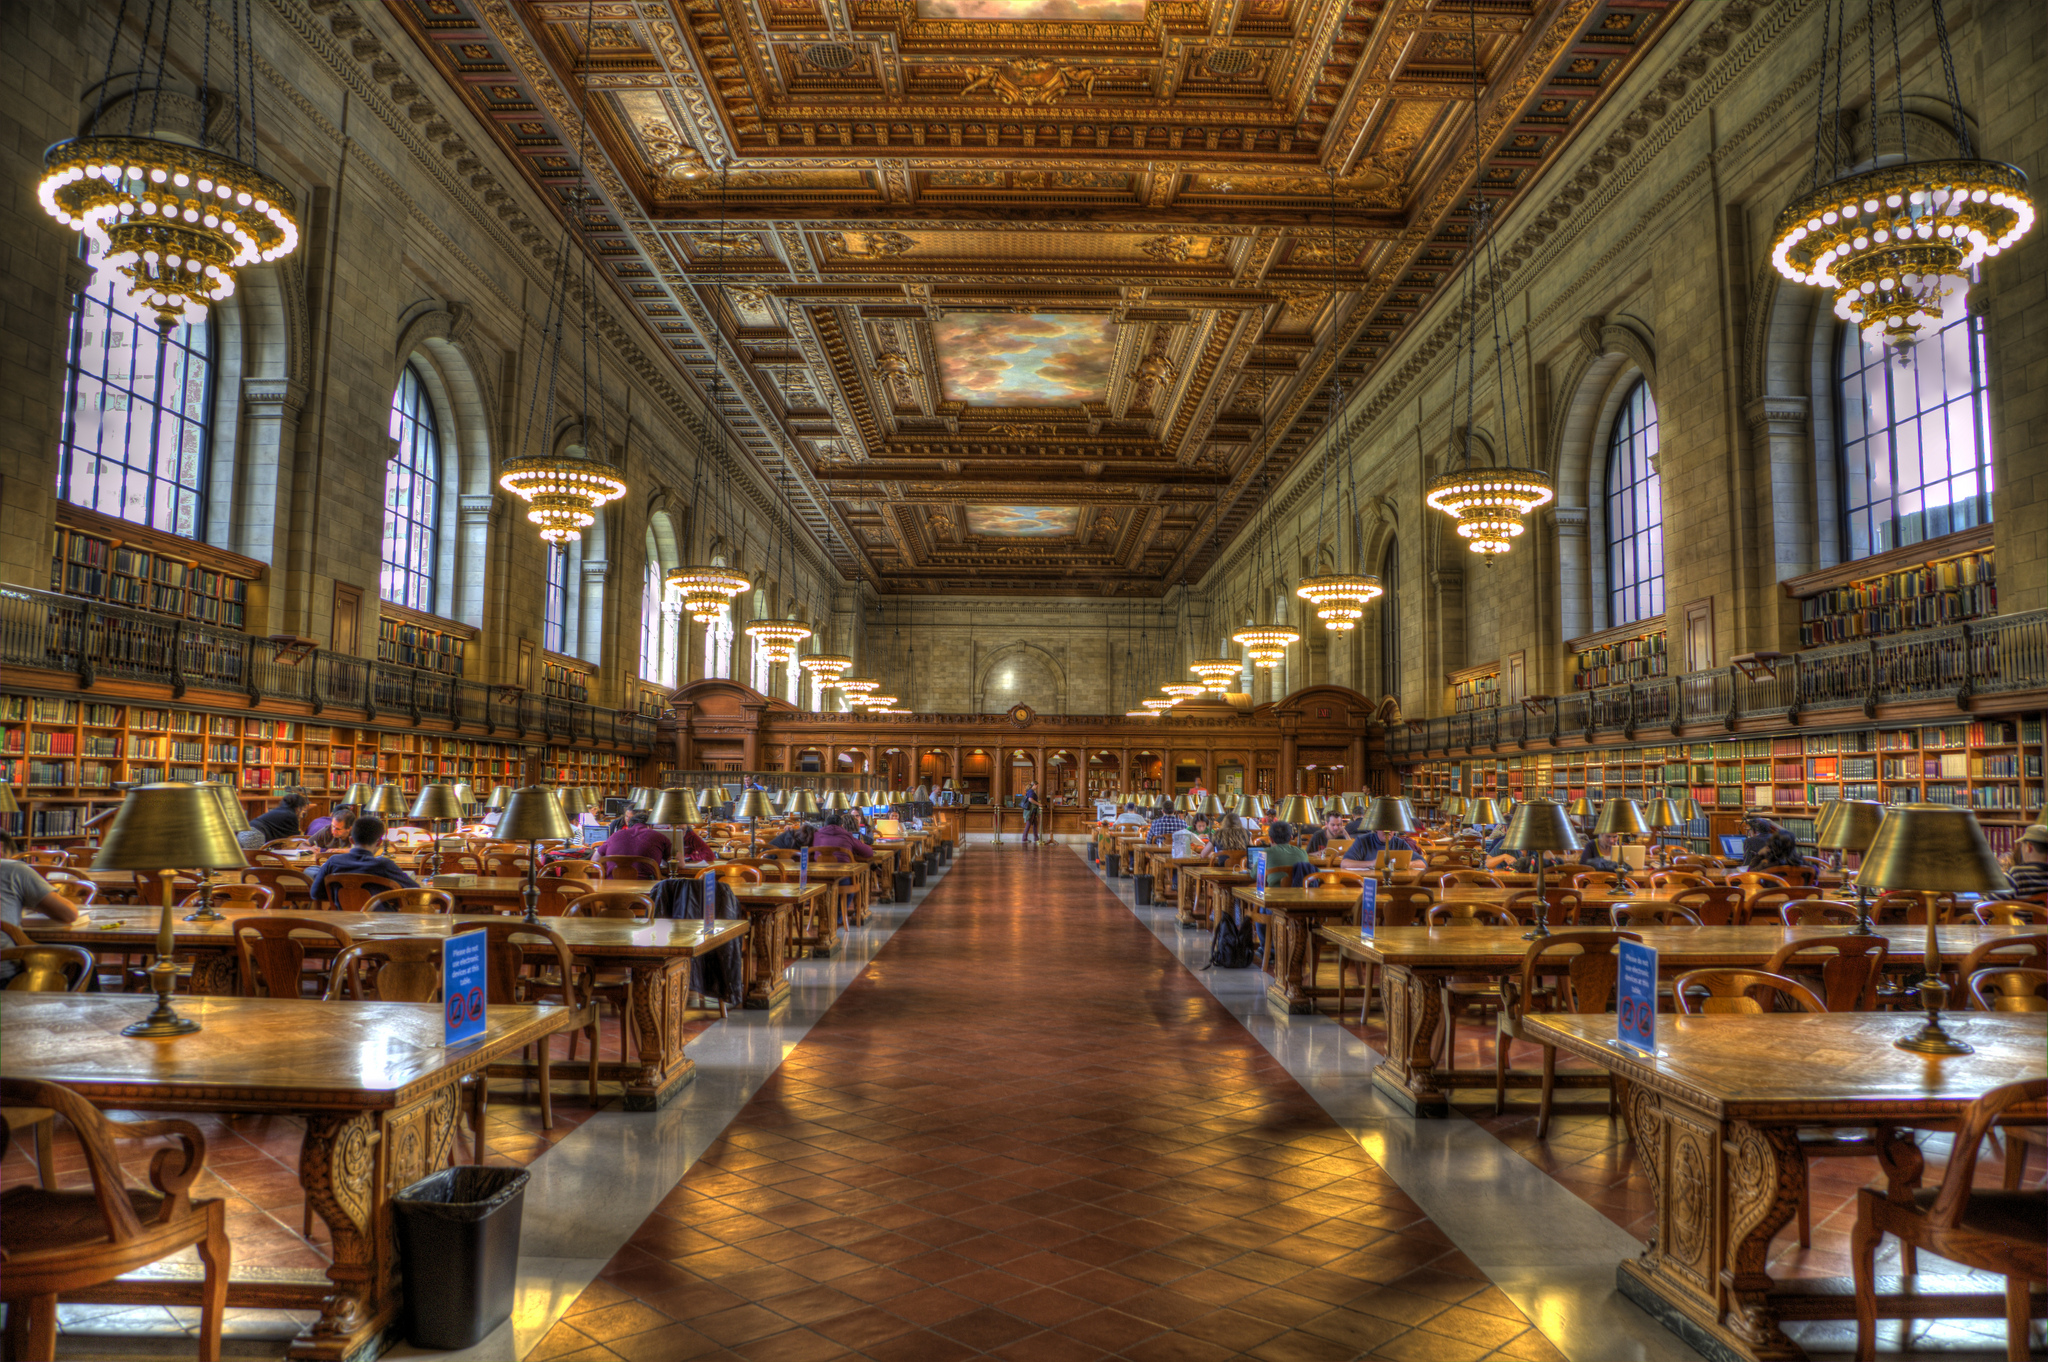 the-welcome-blog-tours-and-sightseeing-in-new-york-city-THE-NEW-YORK-PUBLIC-LIBRARY